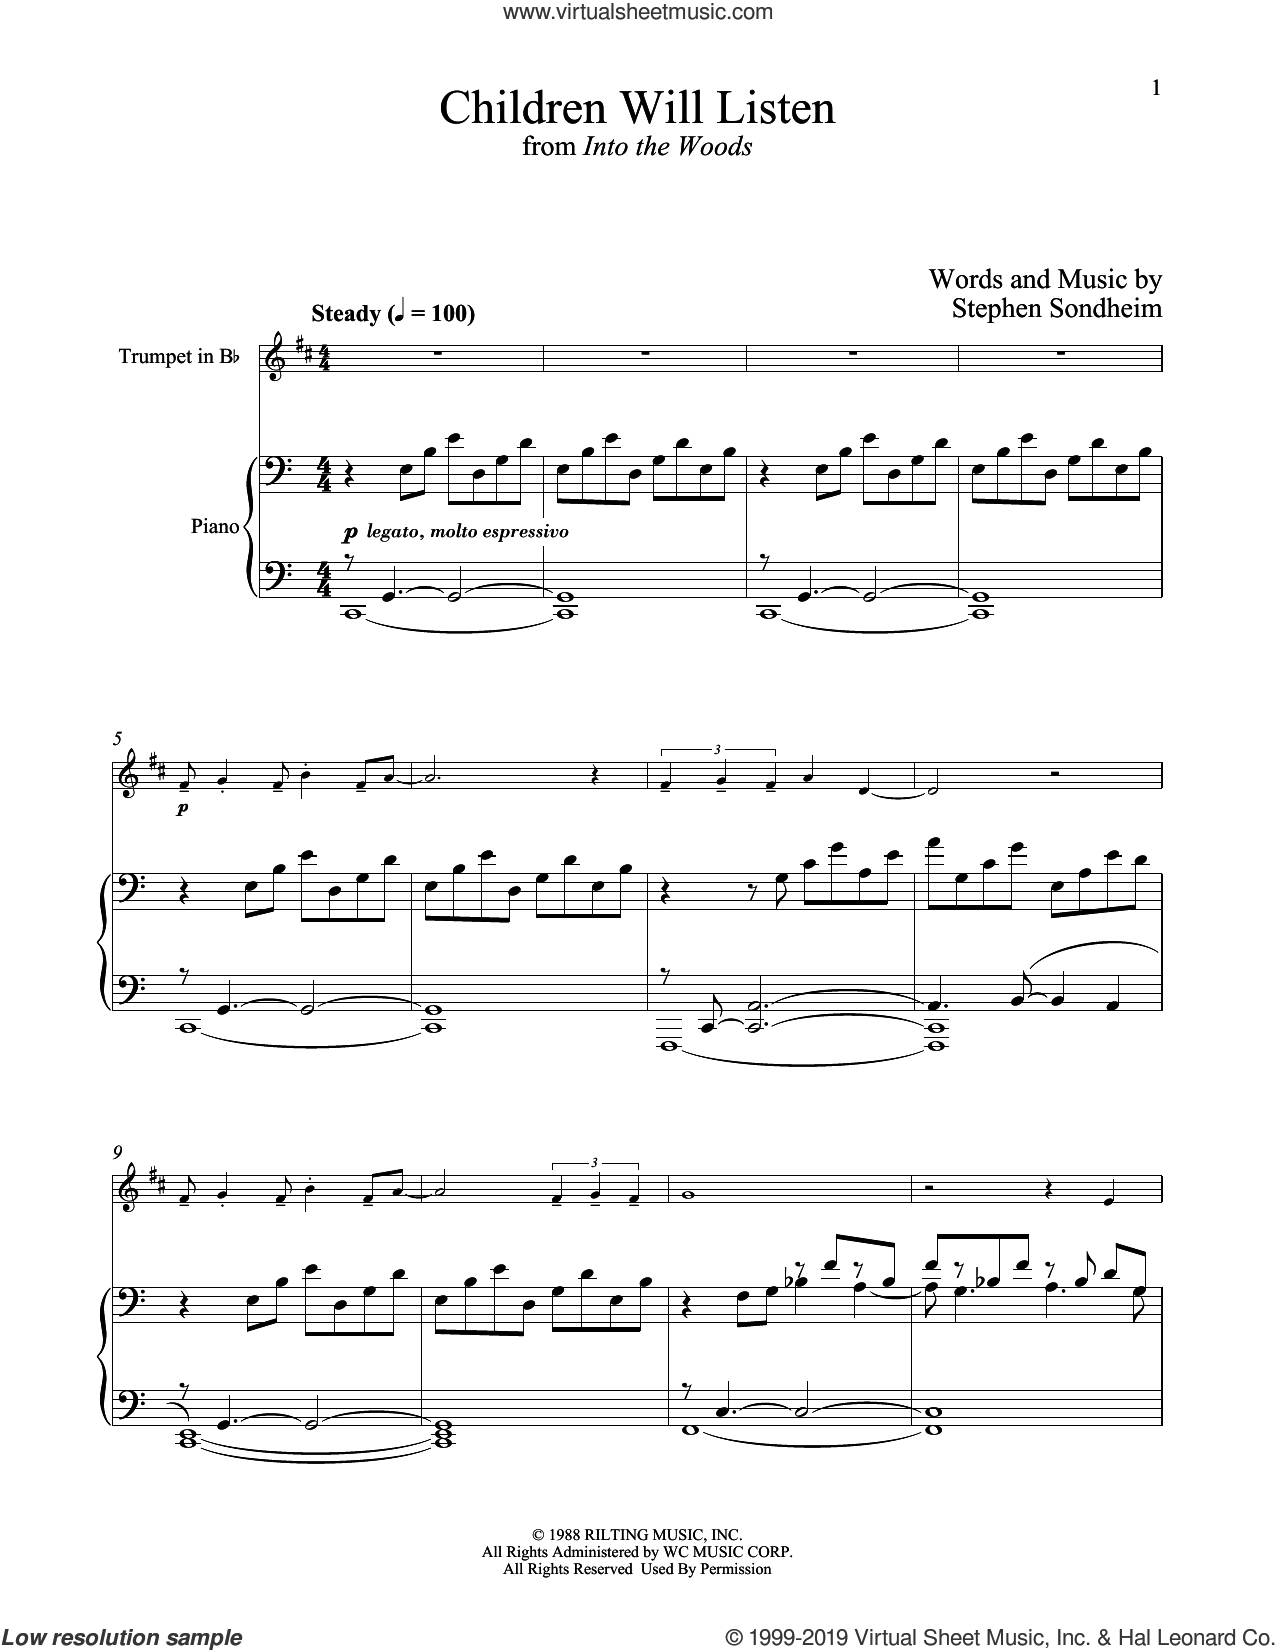 Children Will Listen (from Into The Woods) sheet music for trumpet and piano by Stephen Sondheim, intermediate skill level